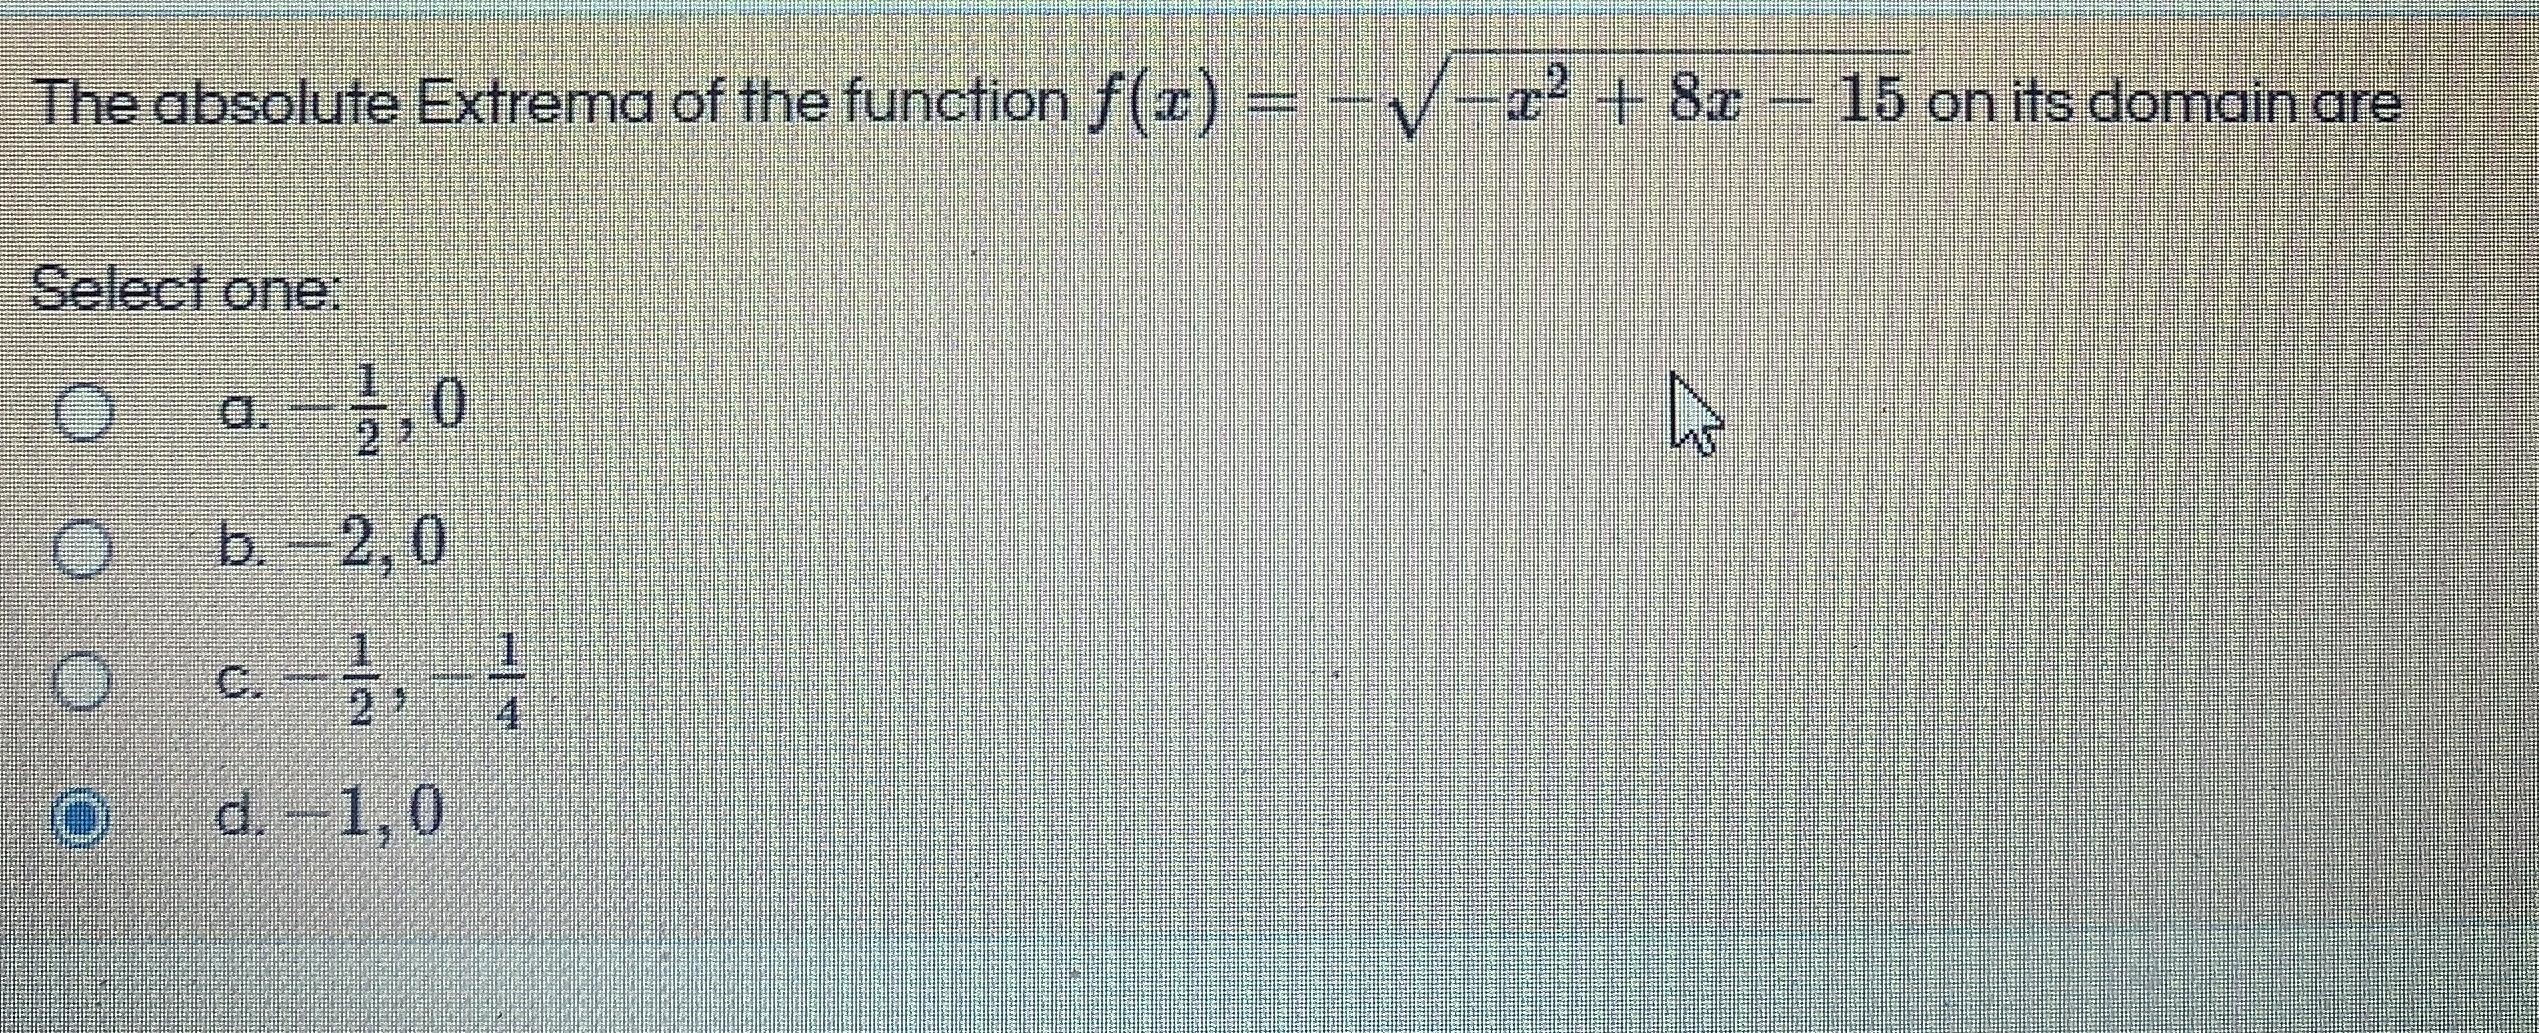 The absolute Extrema of the function f(r) = -V-x² + 8x- 15 on its domain are .2